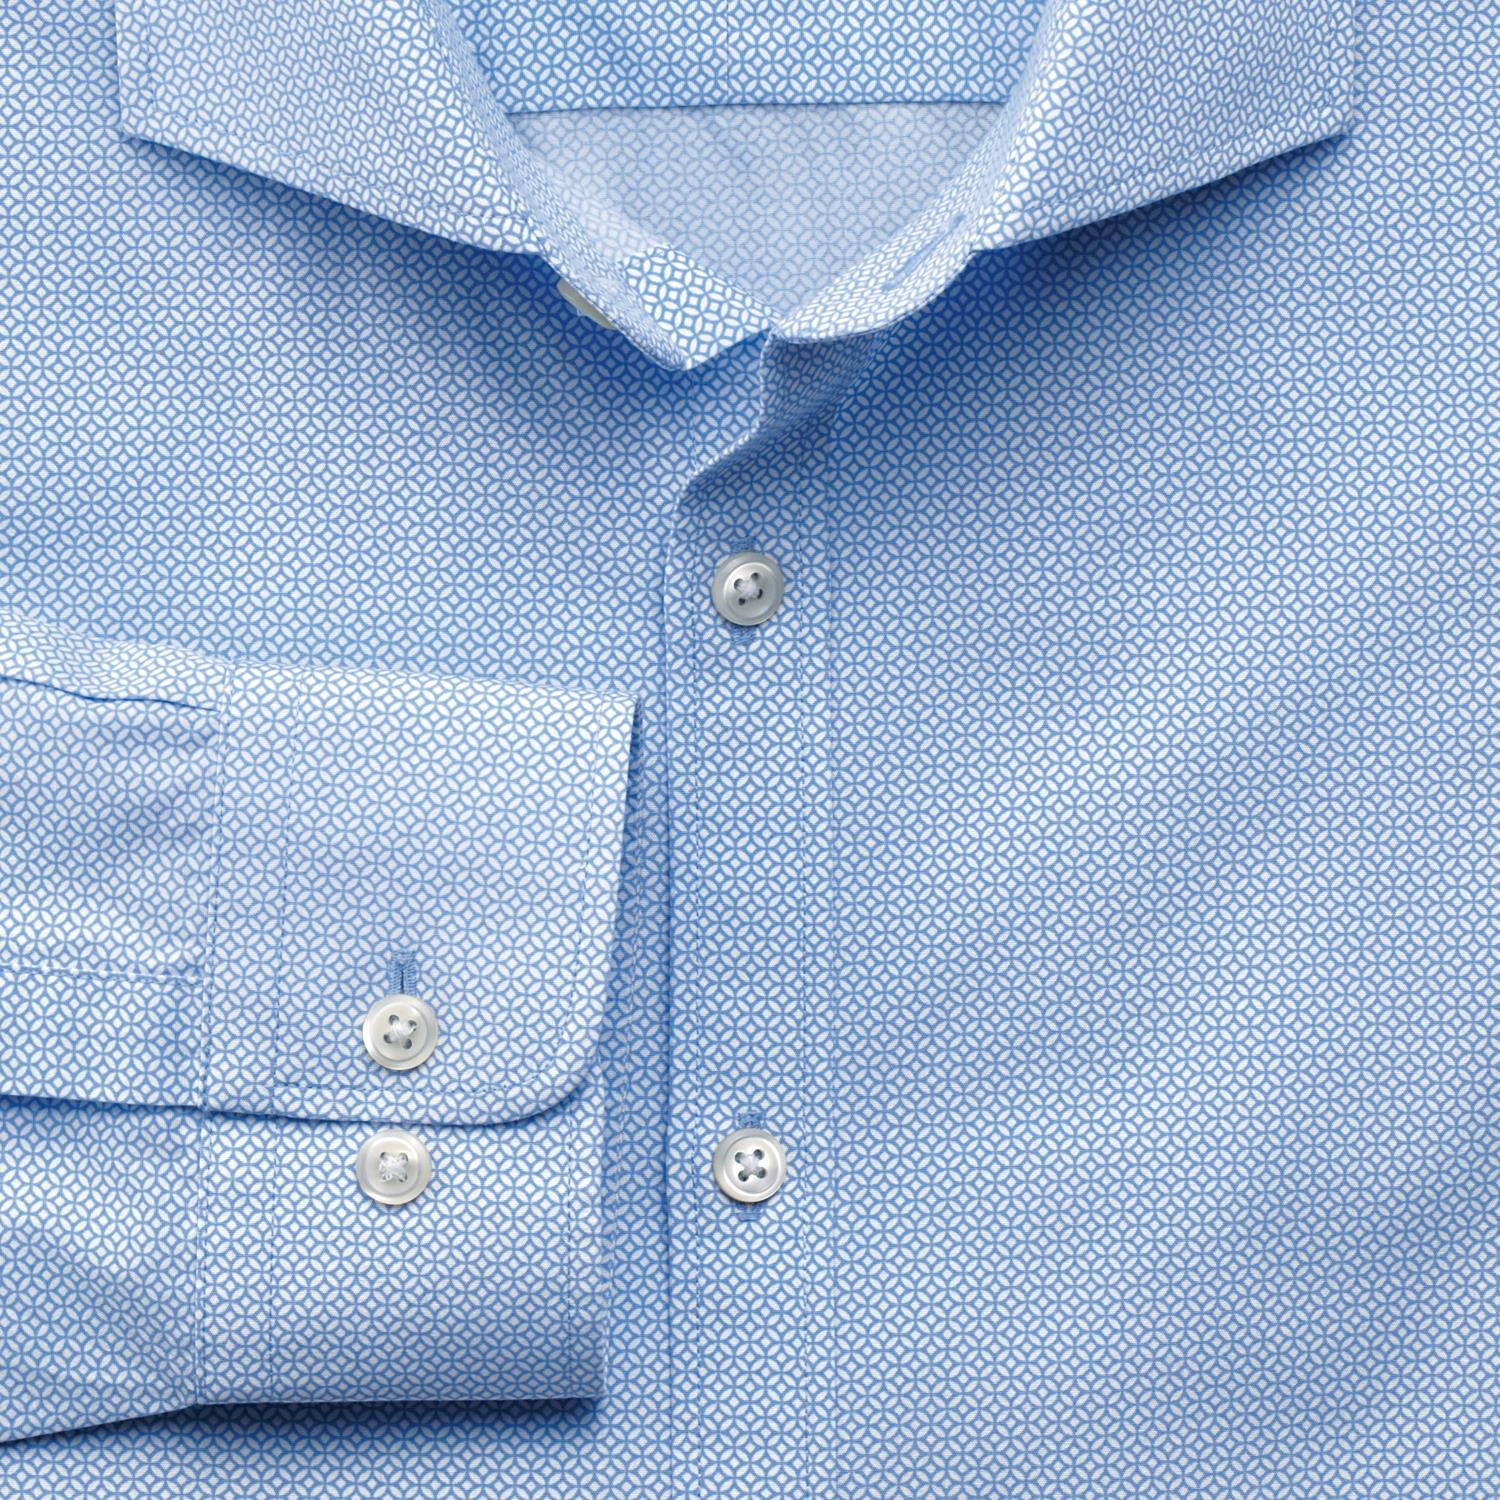 Classic Fit Sky Blue Geometric Print Cotton Shirt Single Cuff Size Large by Charles Tyrwhitt